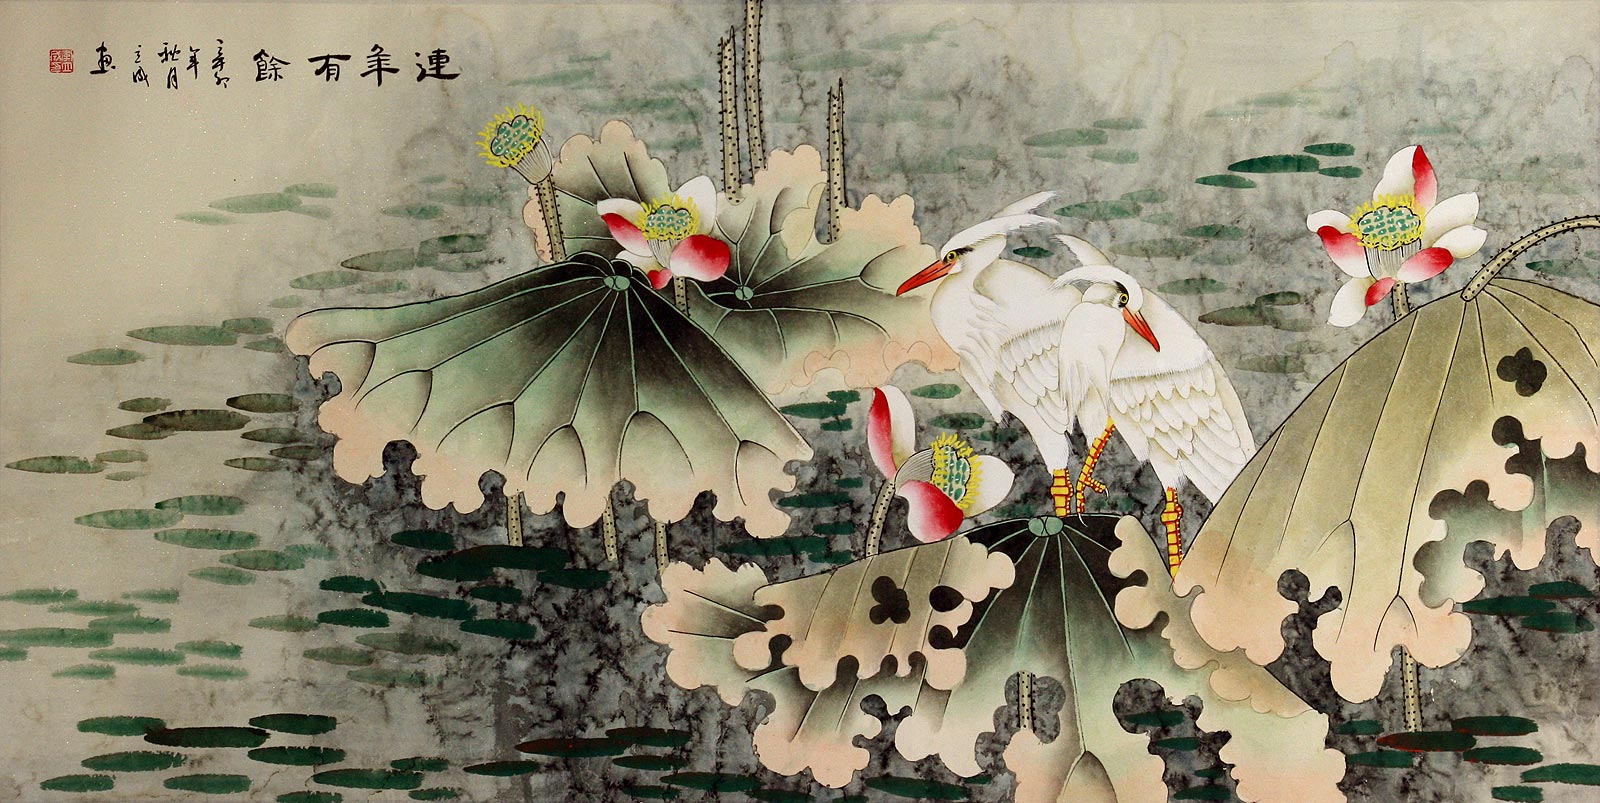 Egret Birds and Lotus - Beautiful Chinese Painting